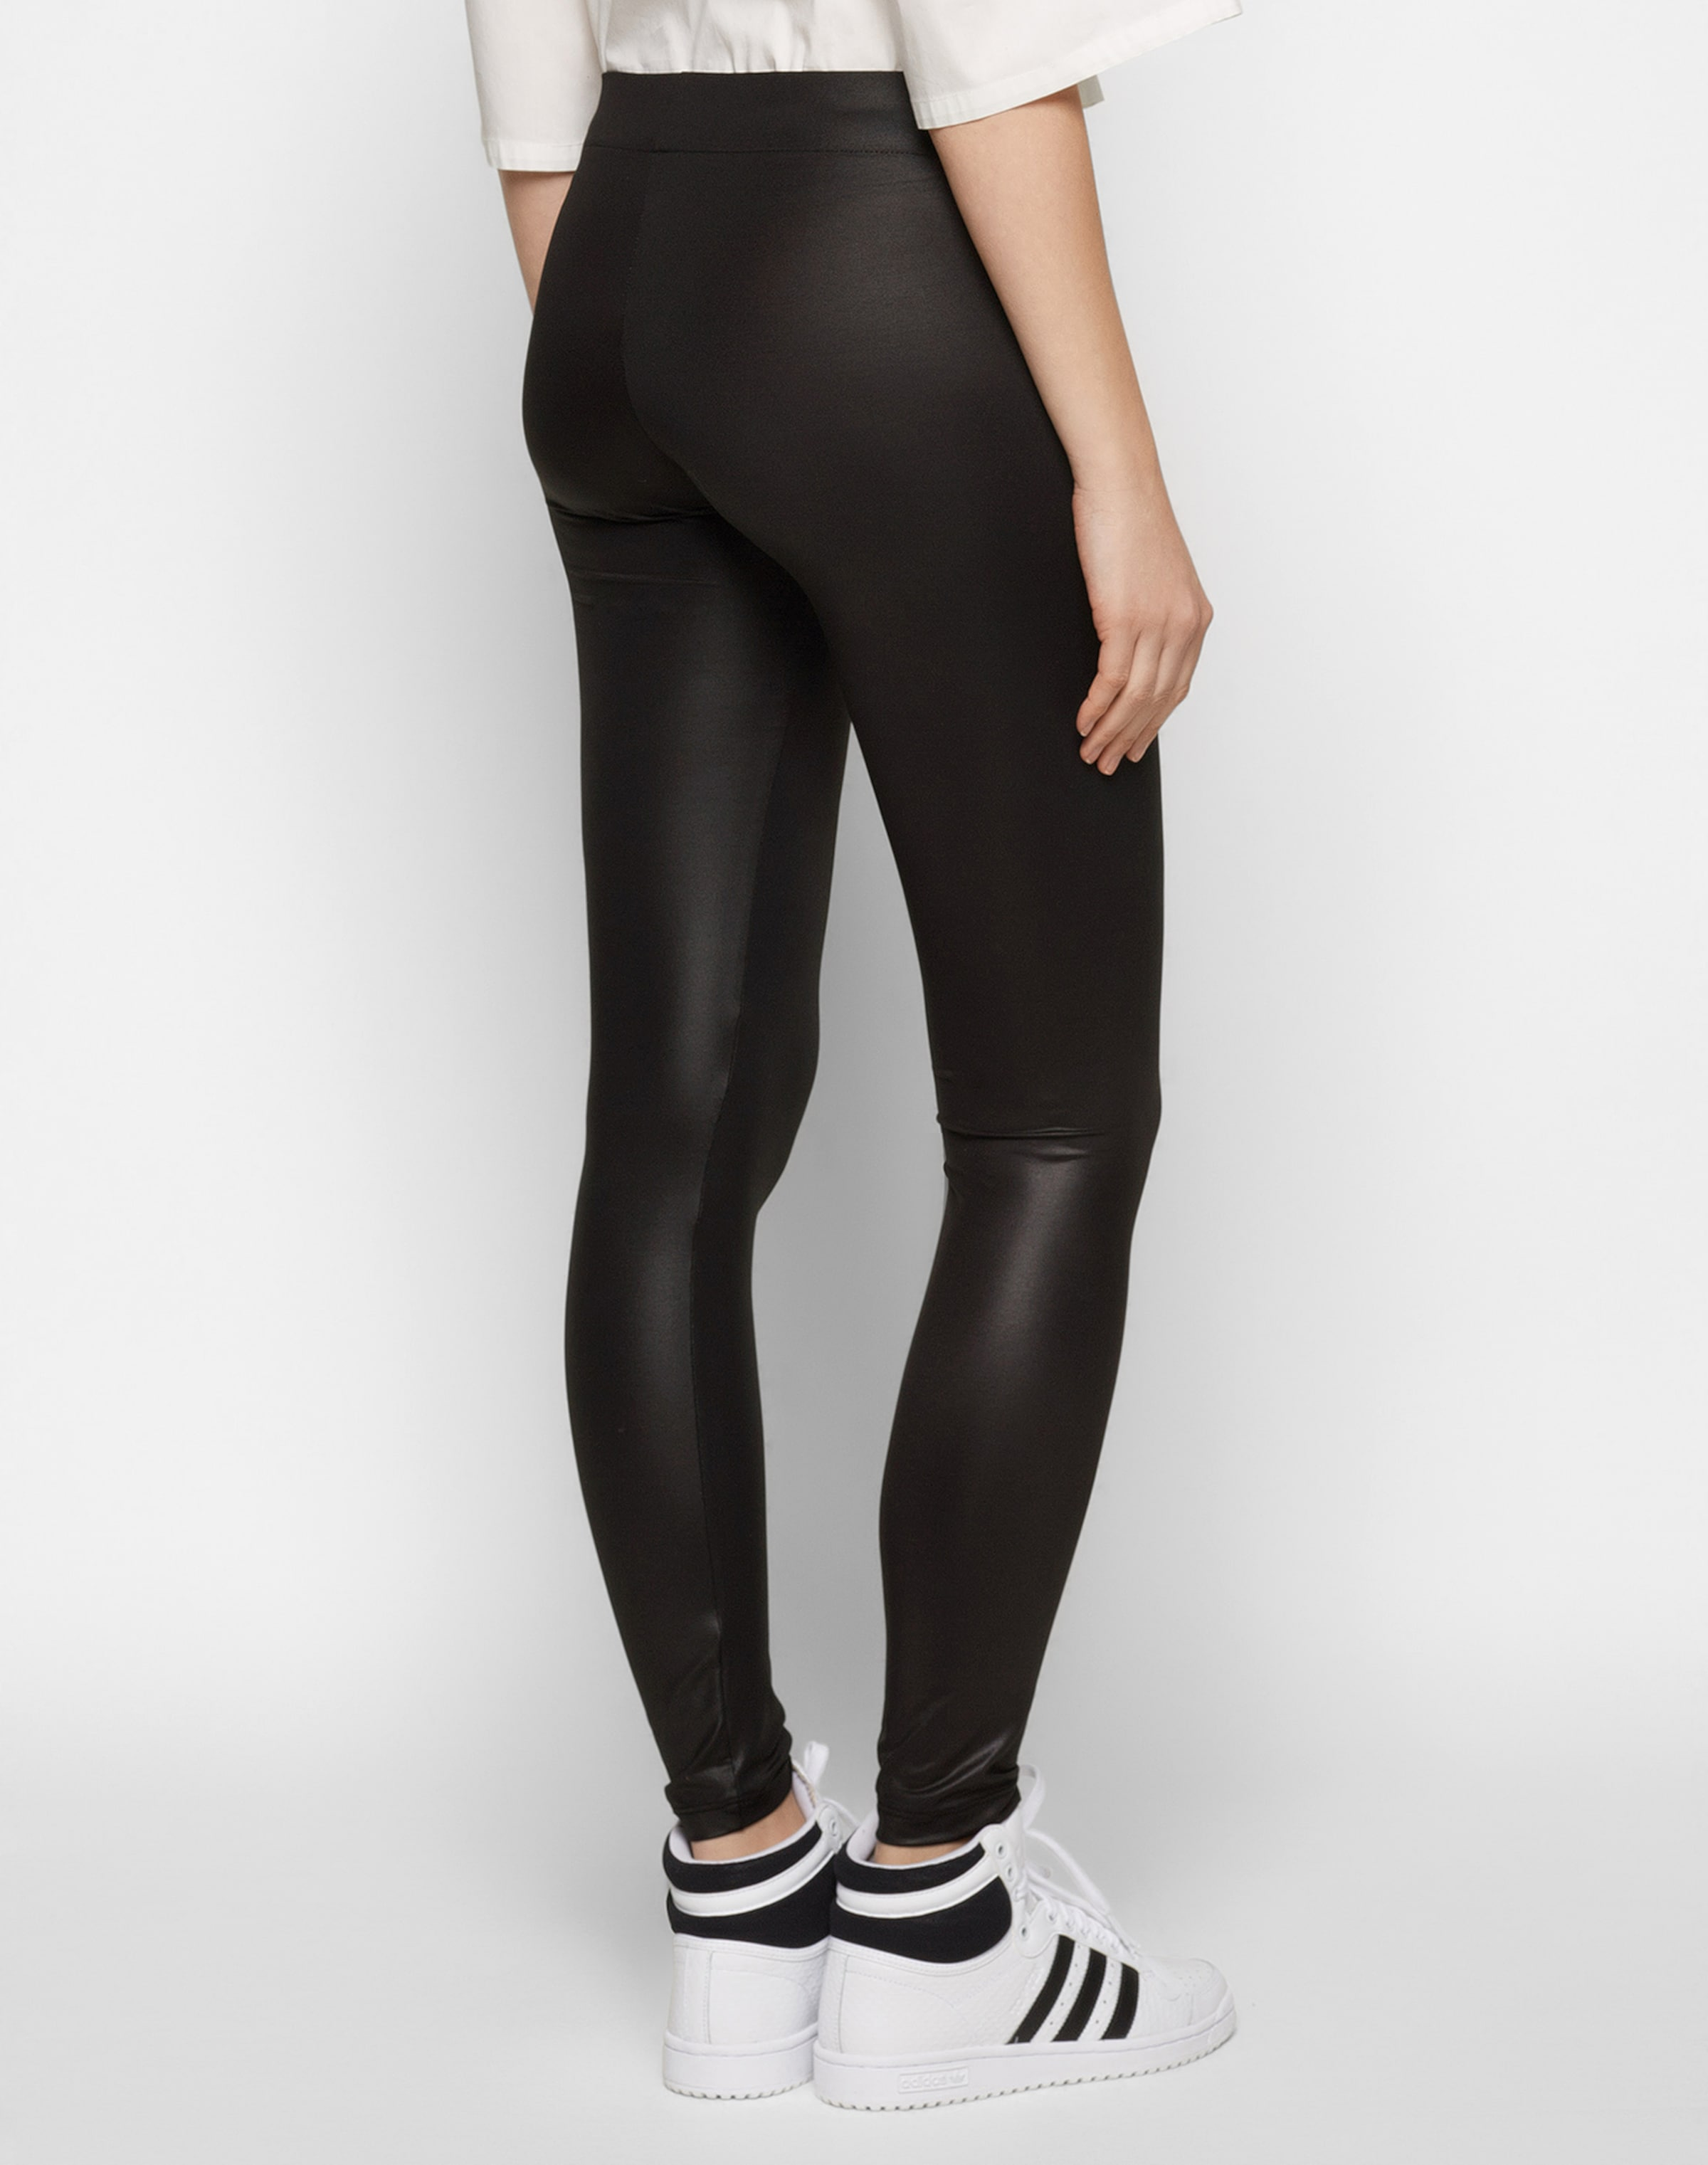 Noisy Noir Leggings 'nm En May Coda' L35AR4j